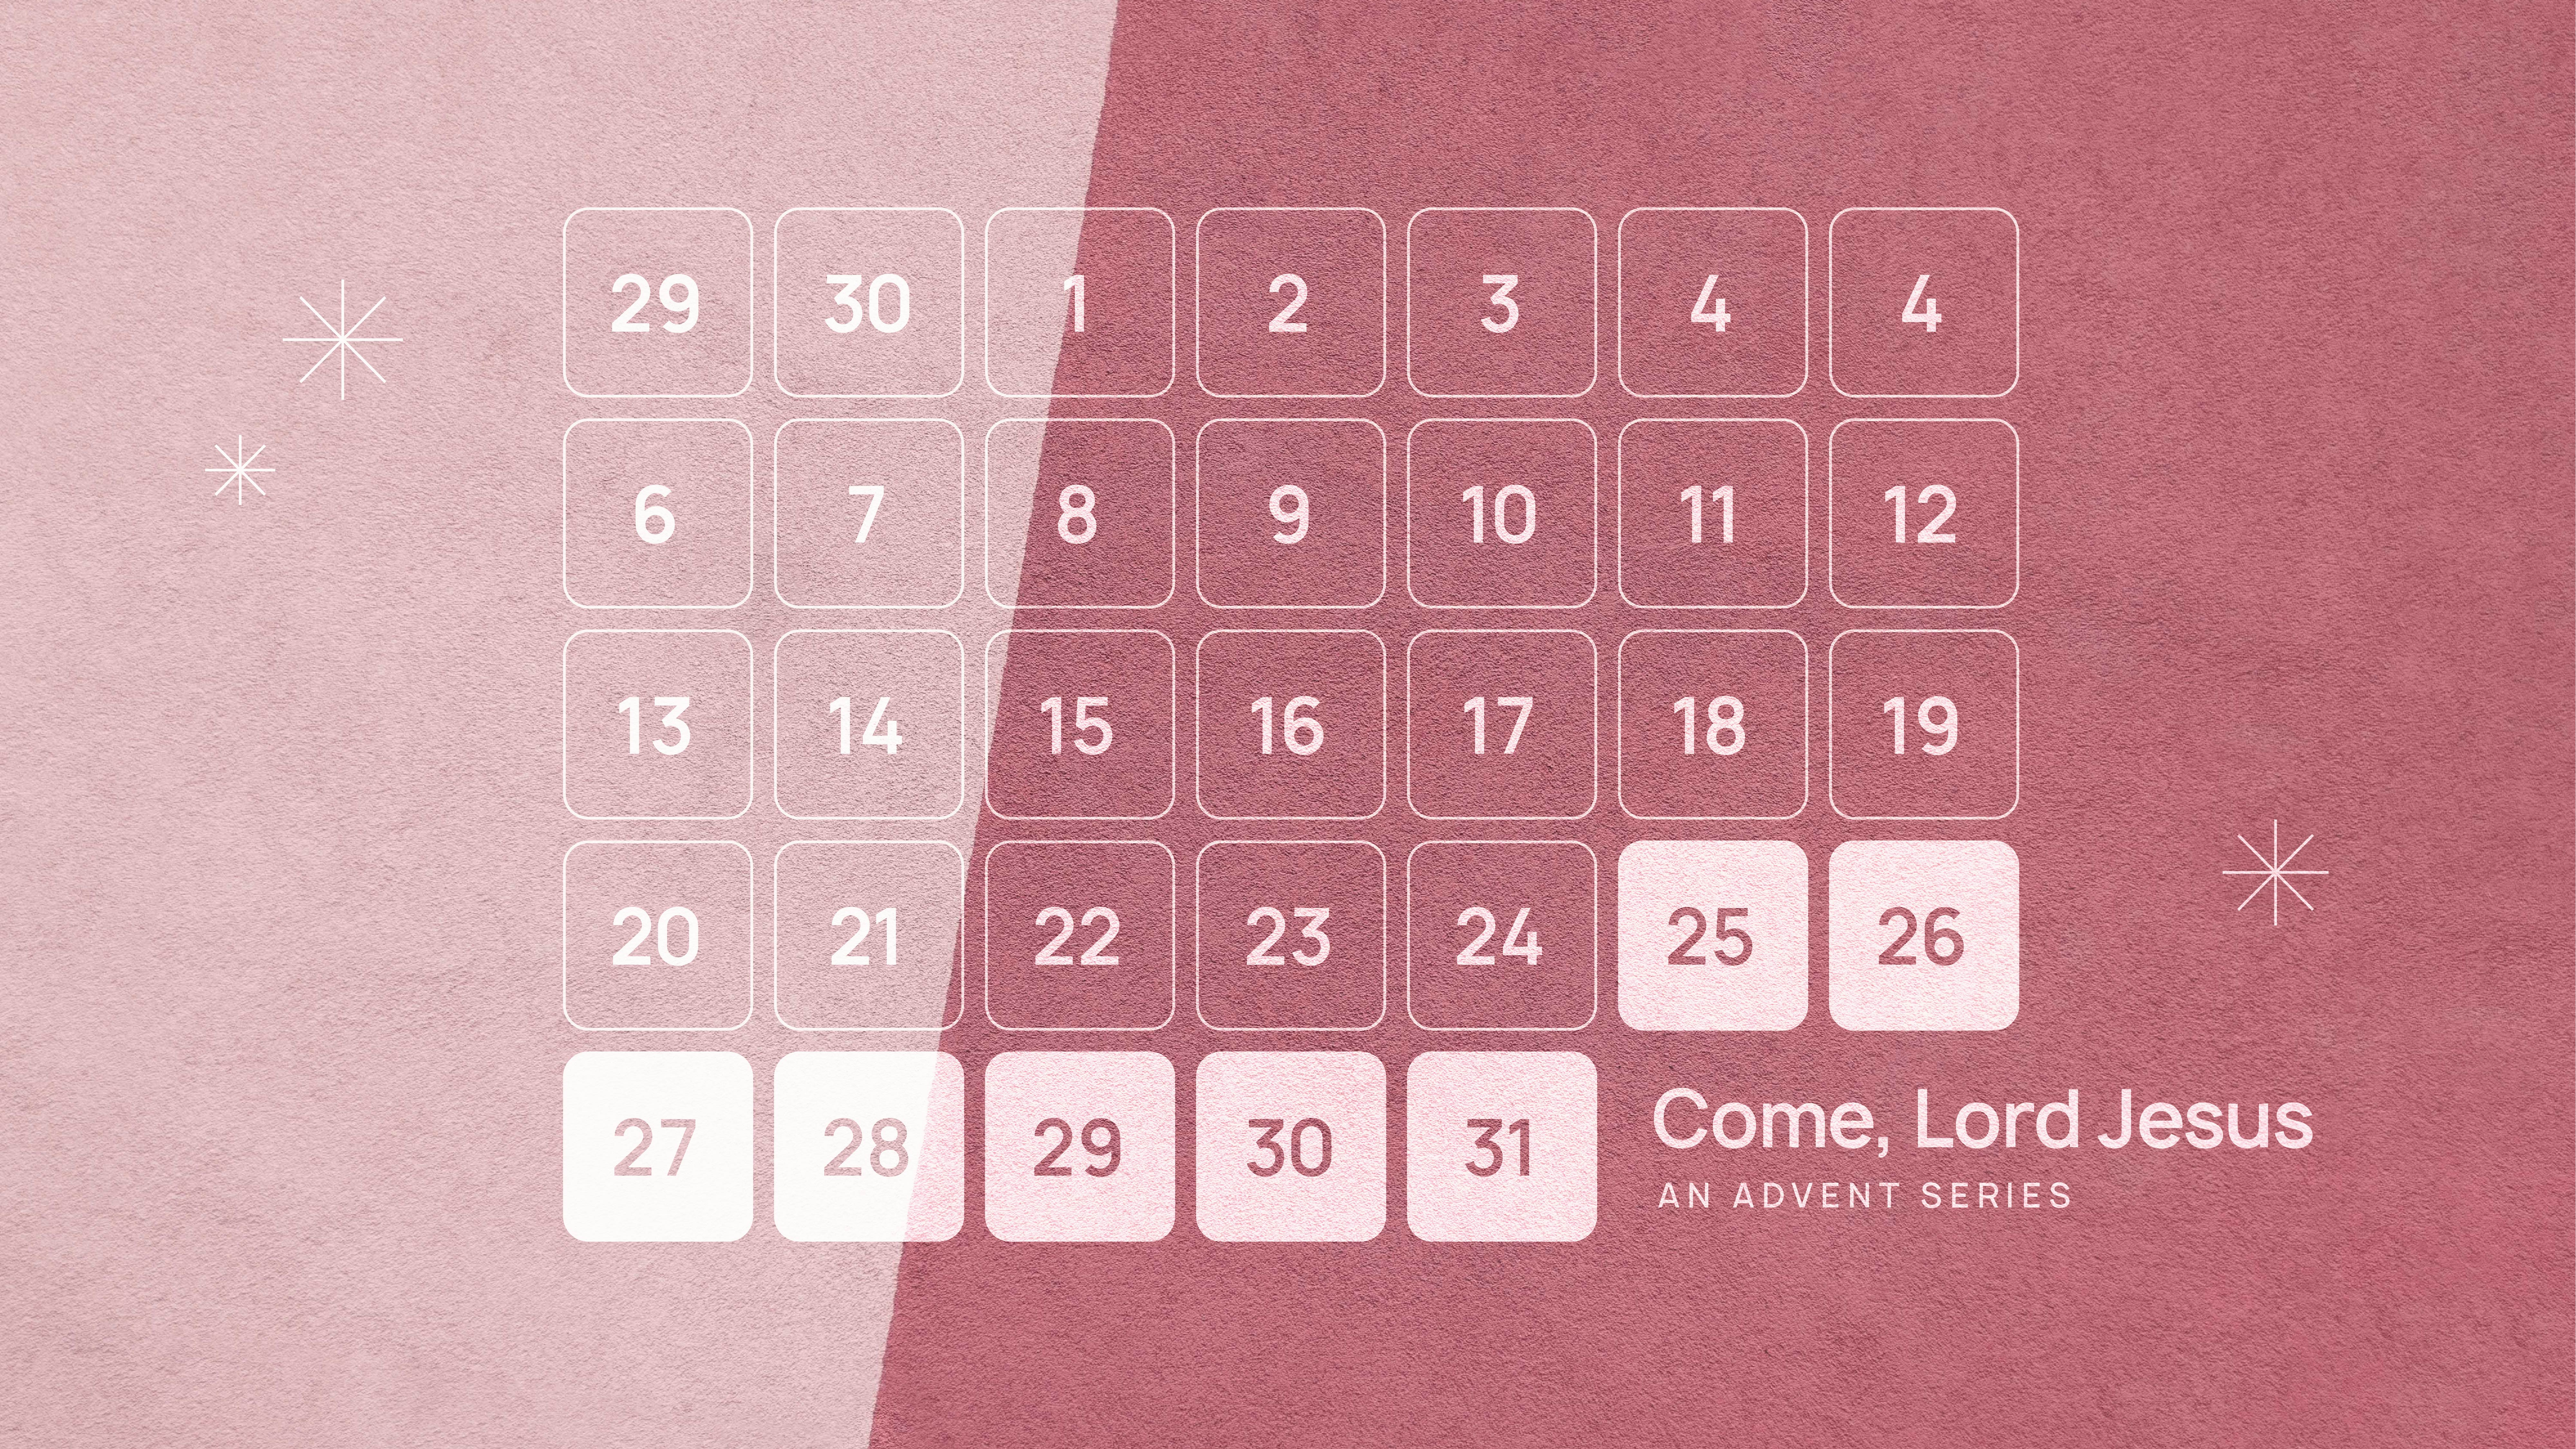 Come Lord Jesus-An Advent Series